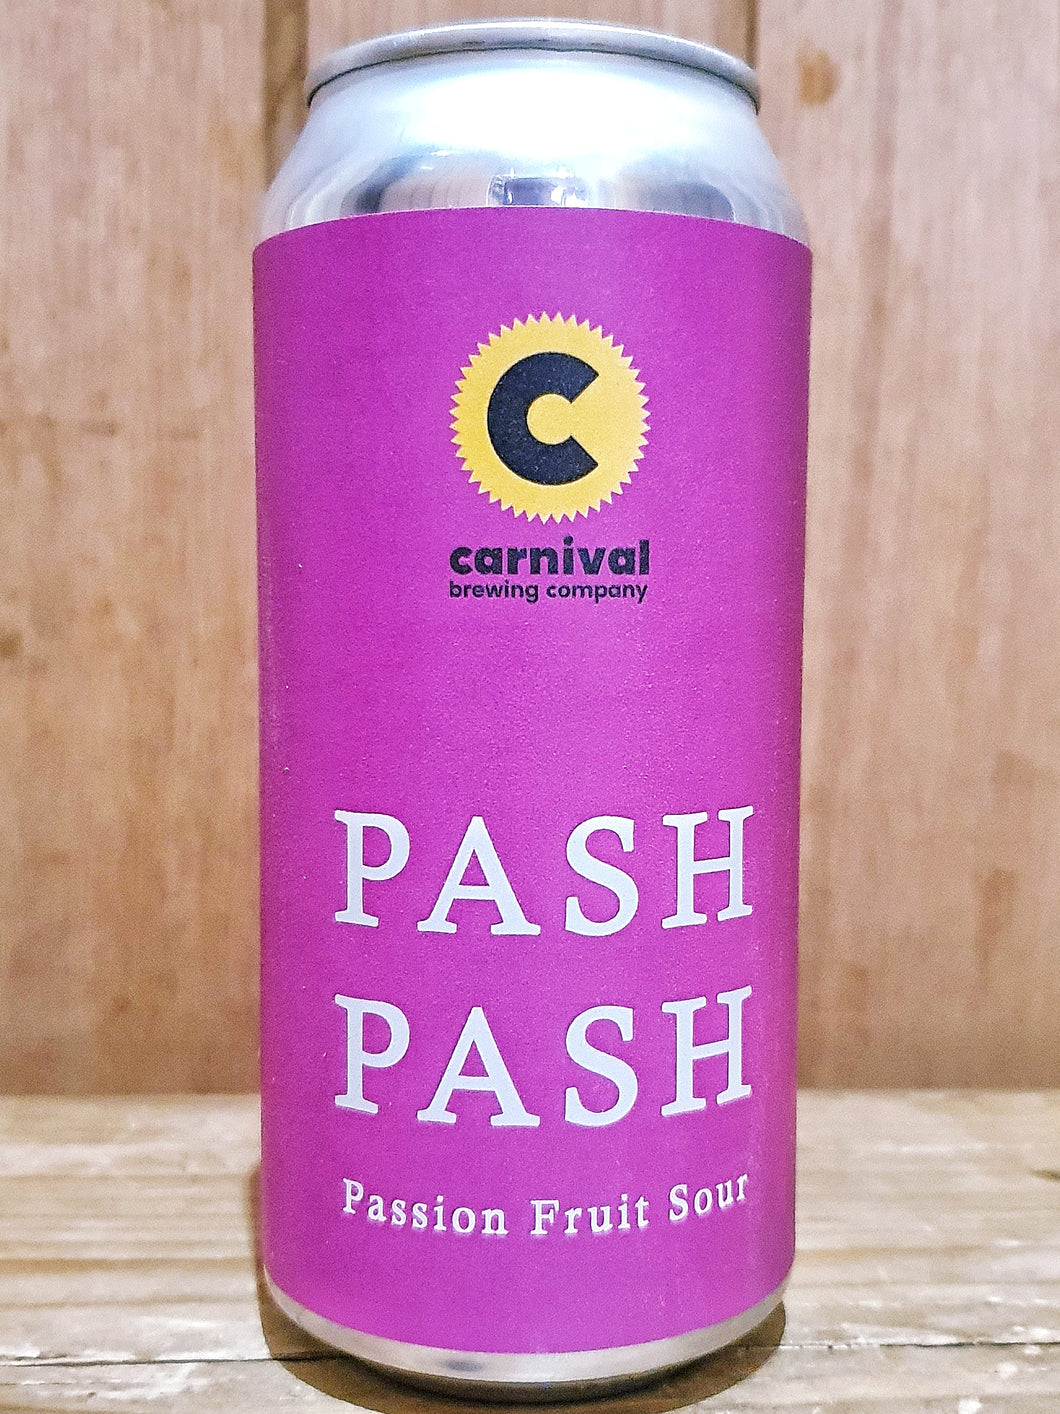 Carnival Brewing Co - Pash Pash